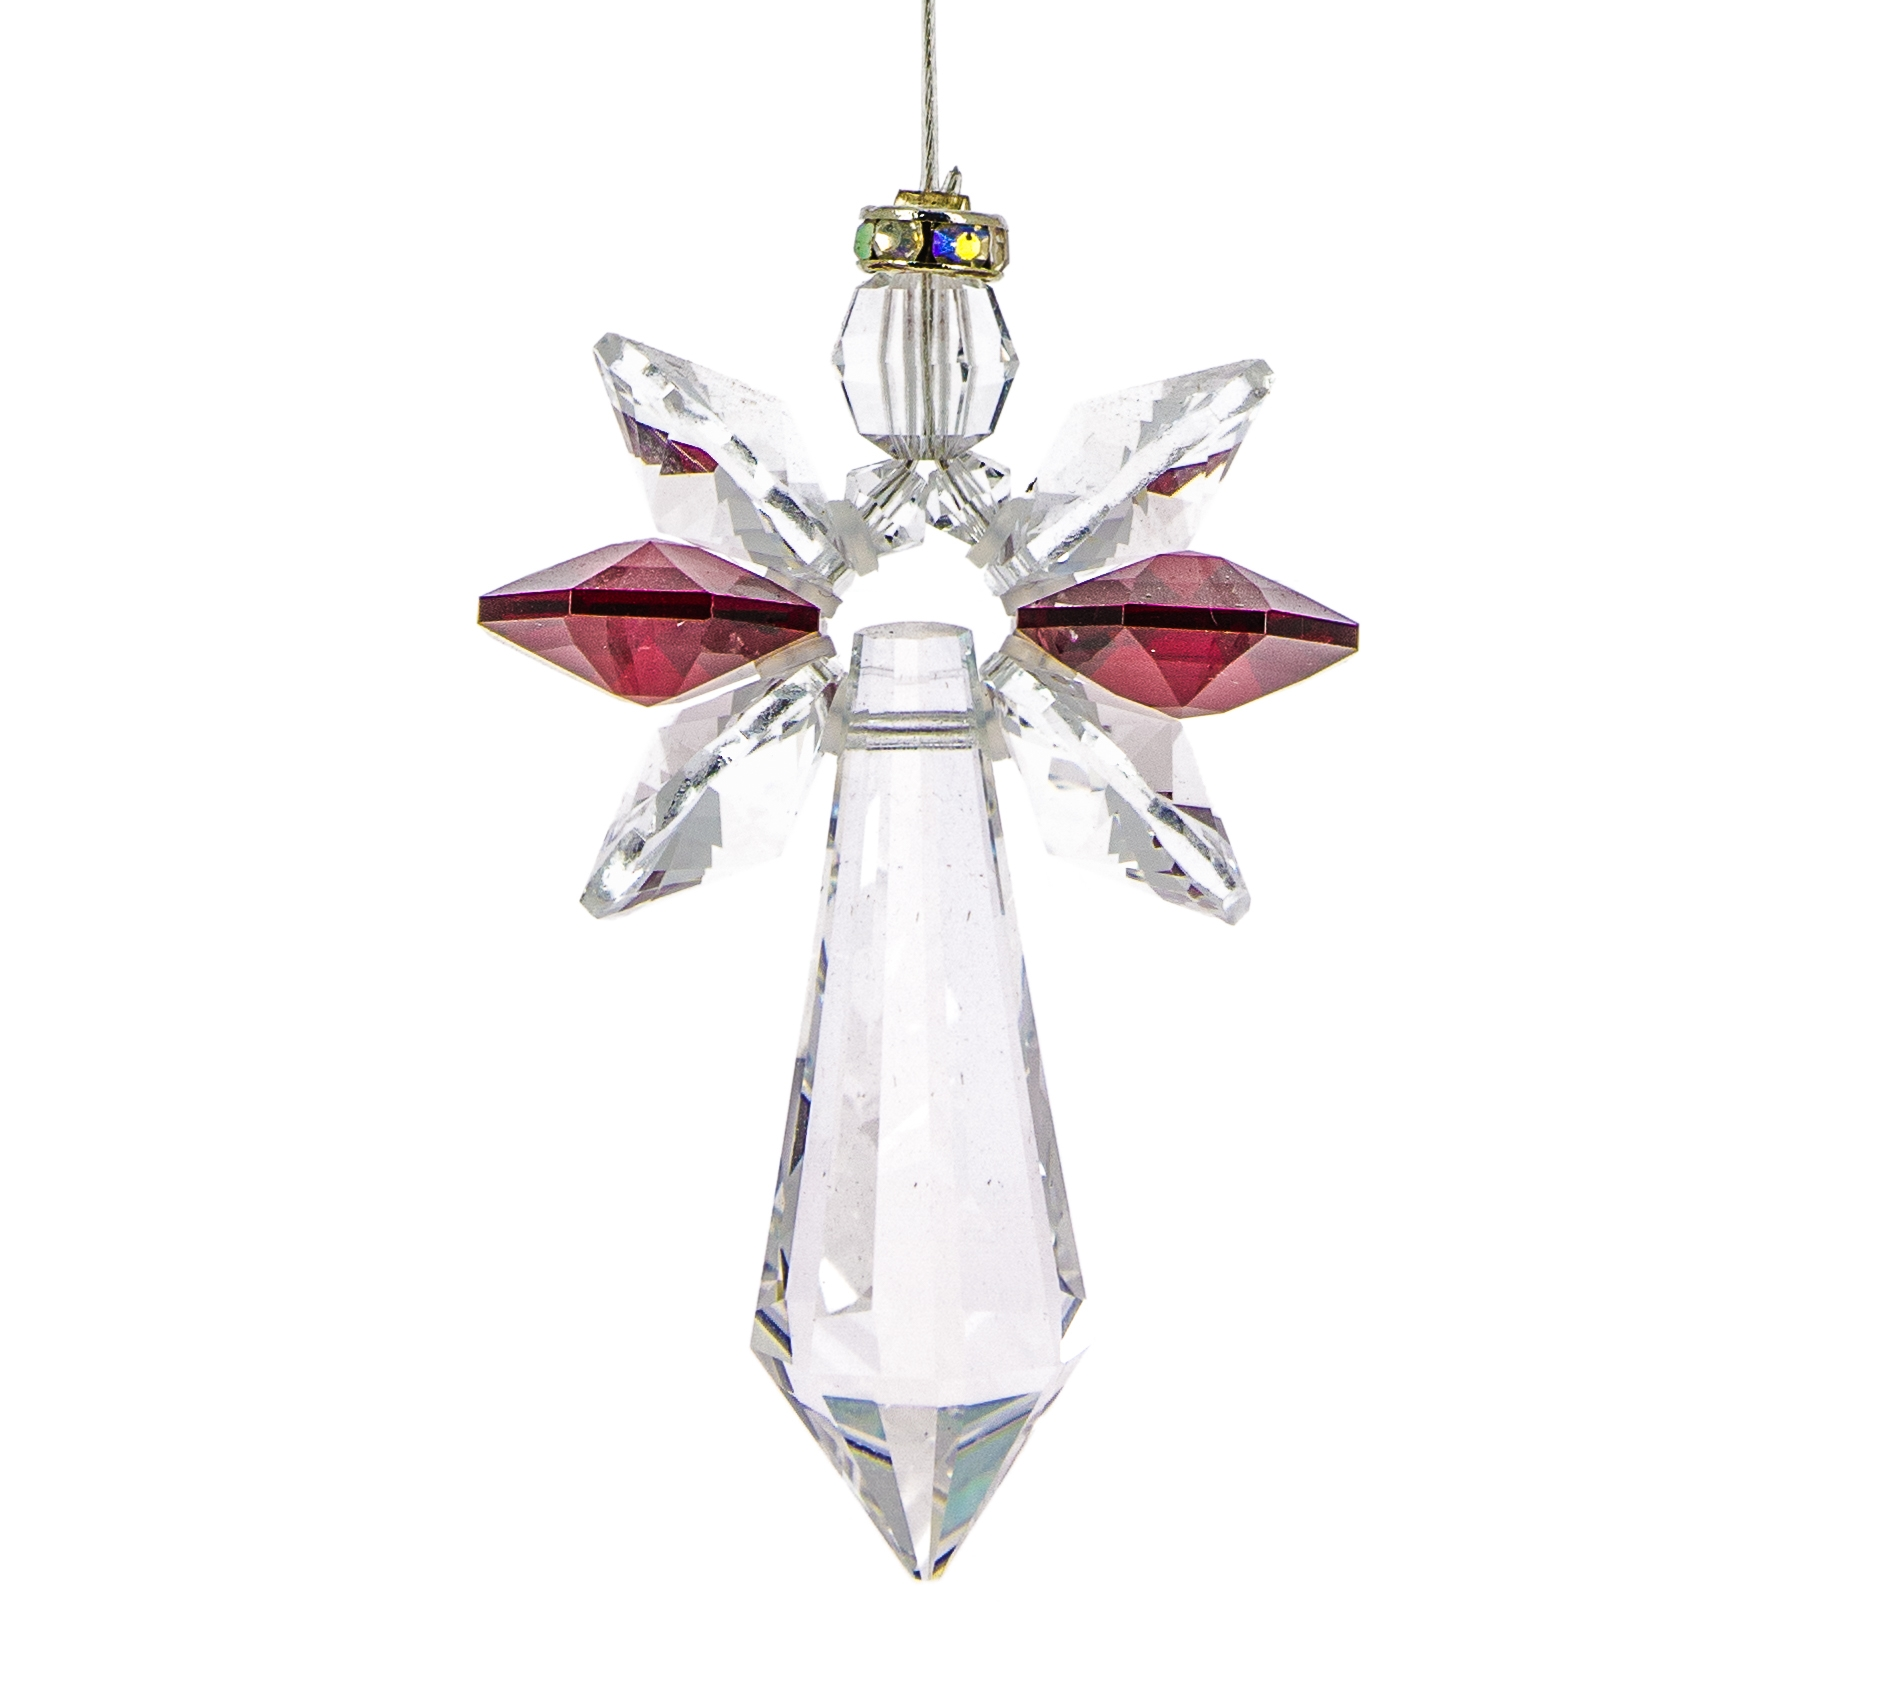 Birthstone Archangel Crystal Suncatcher - Garnet, January